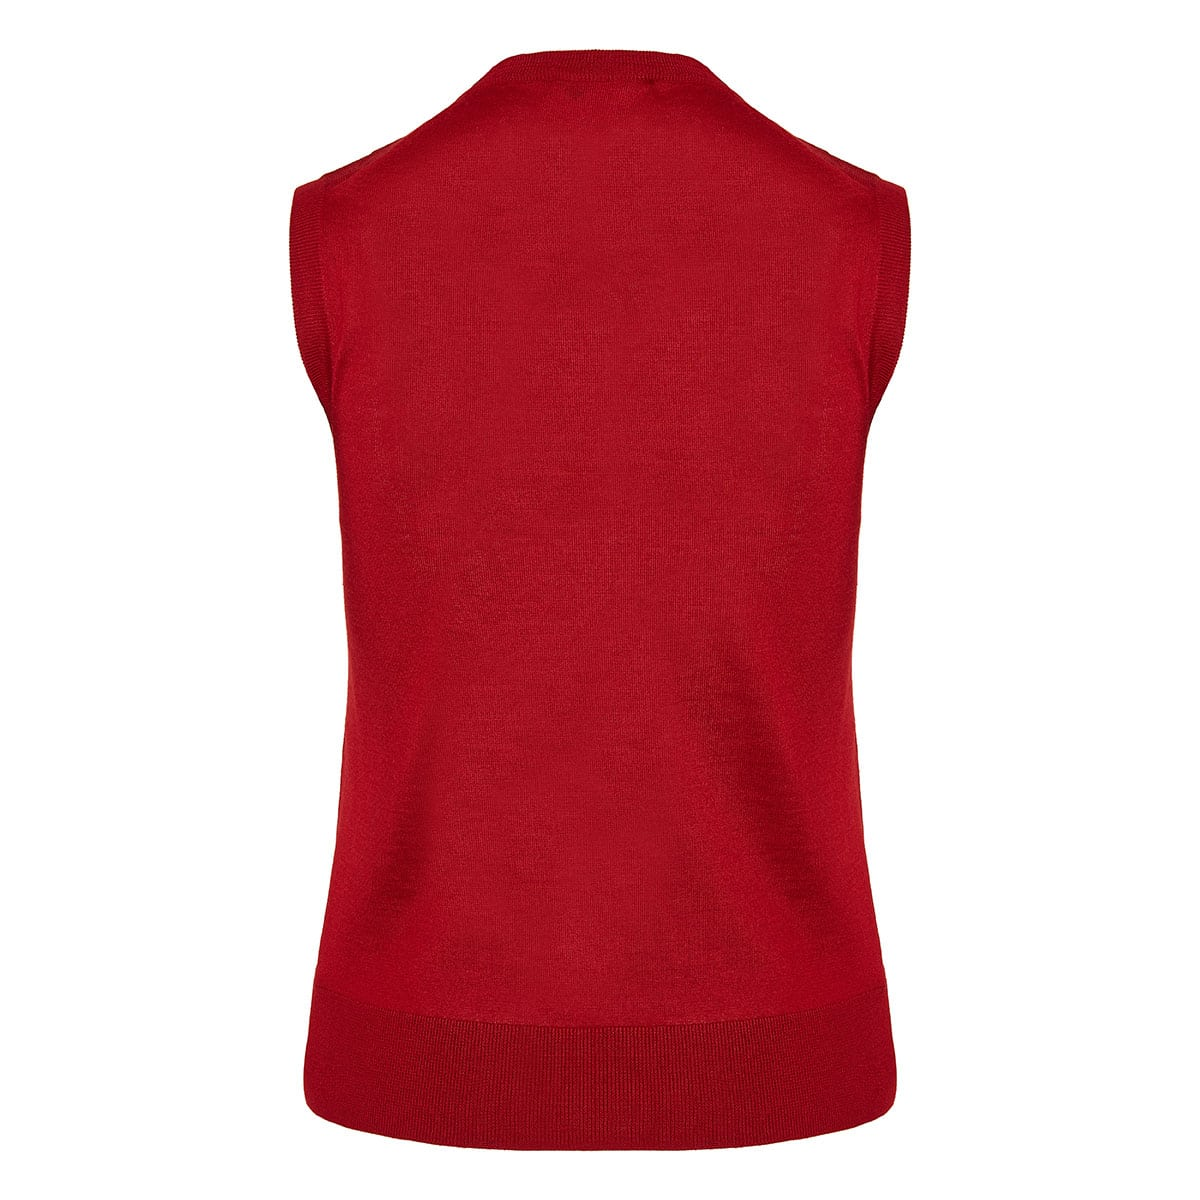 Sleeveless cashmere-knitted top